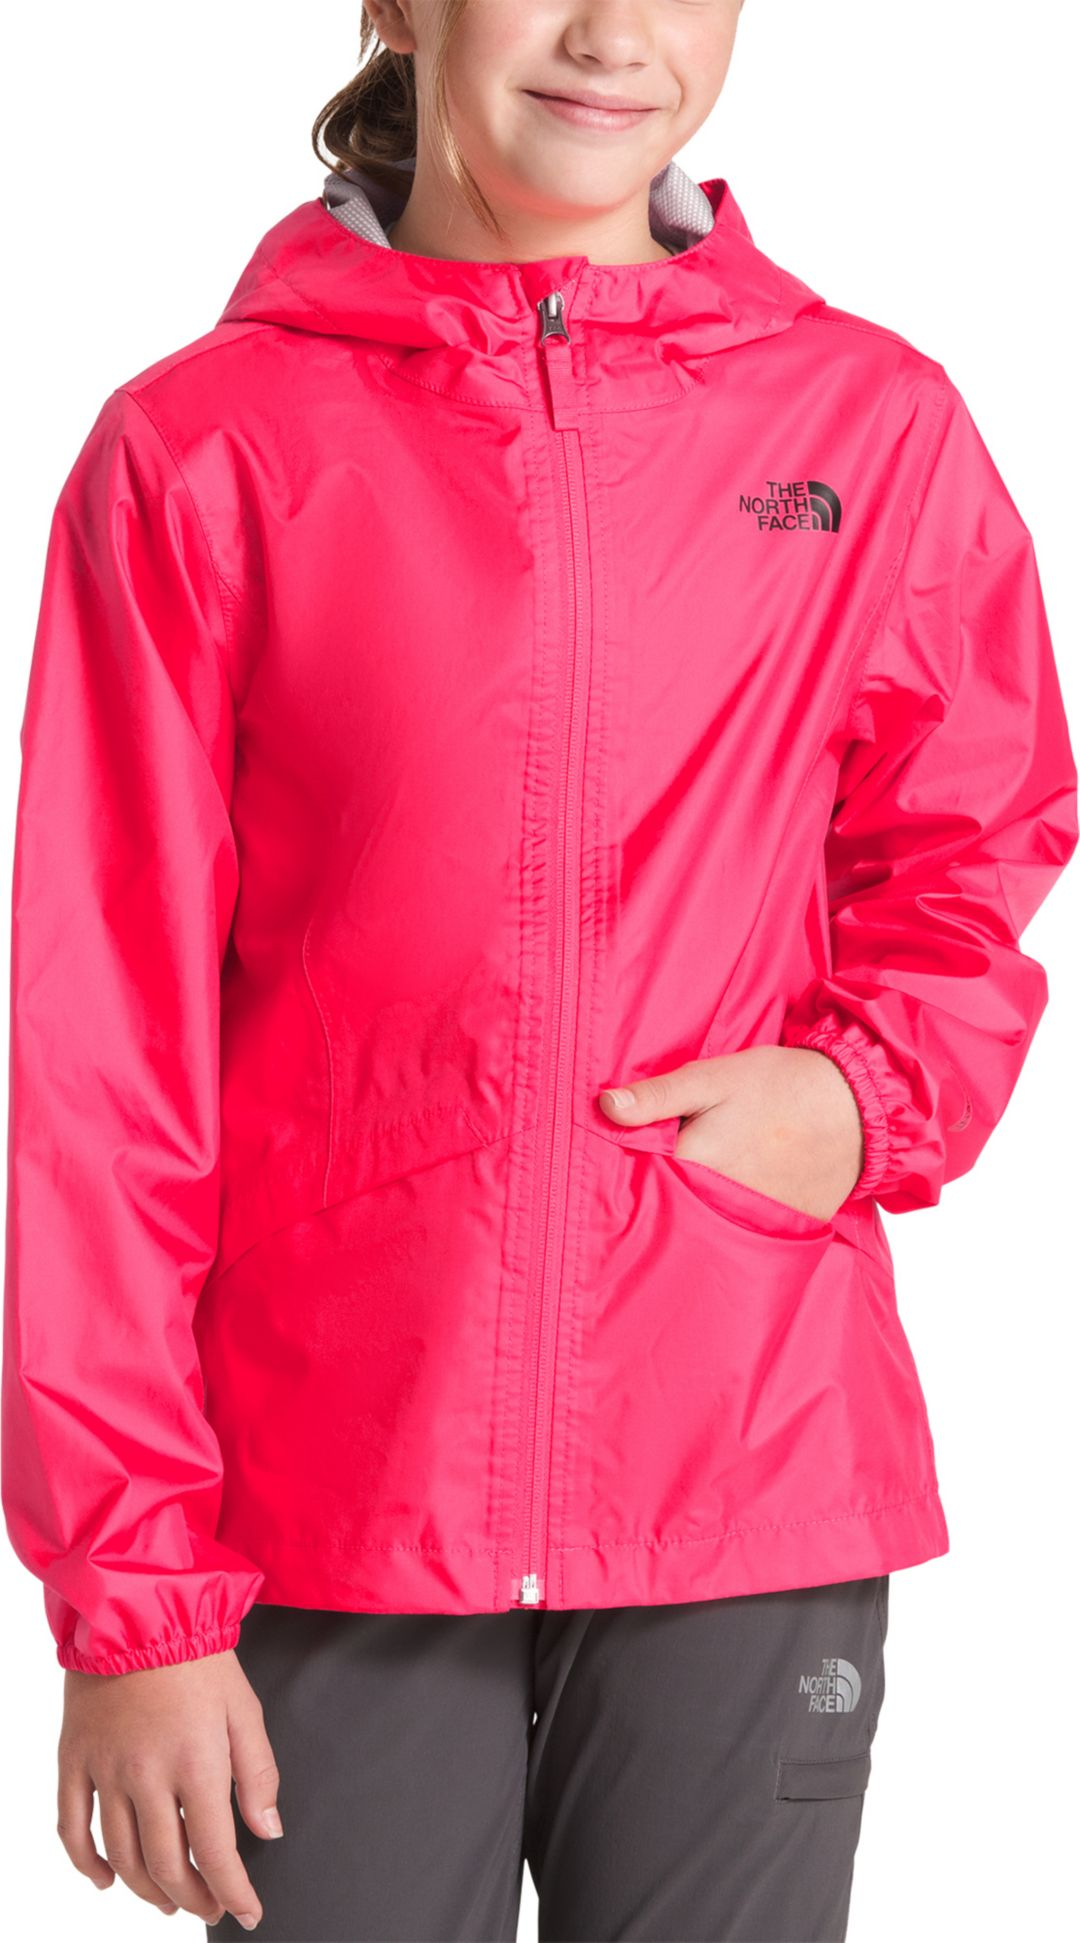 4b47dba44 The North Face Girls' Zipline Rain Jacket | DICK'S Sporting Goods